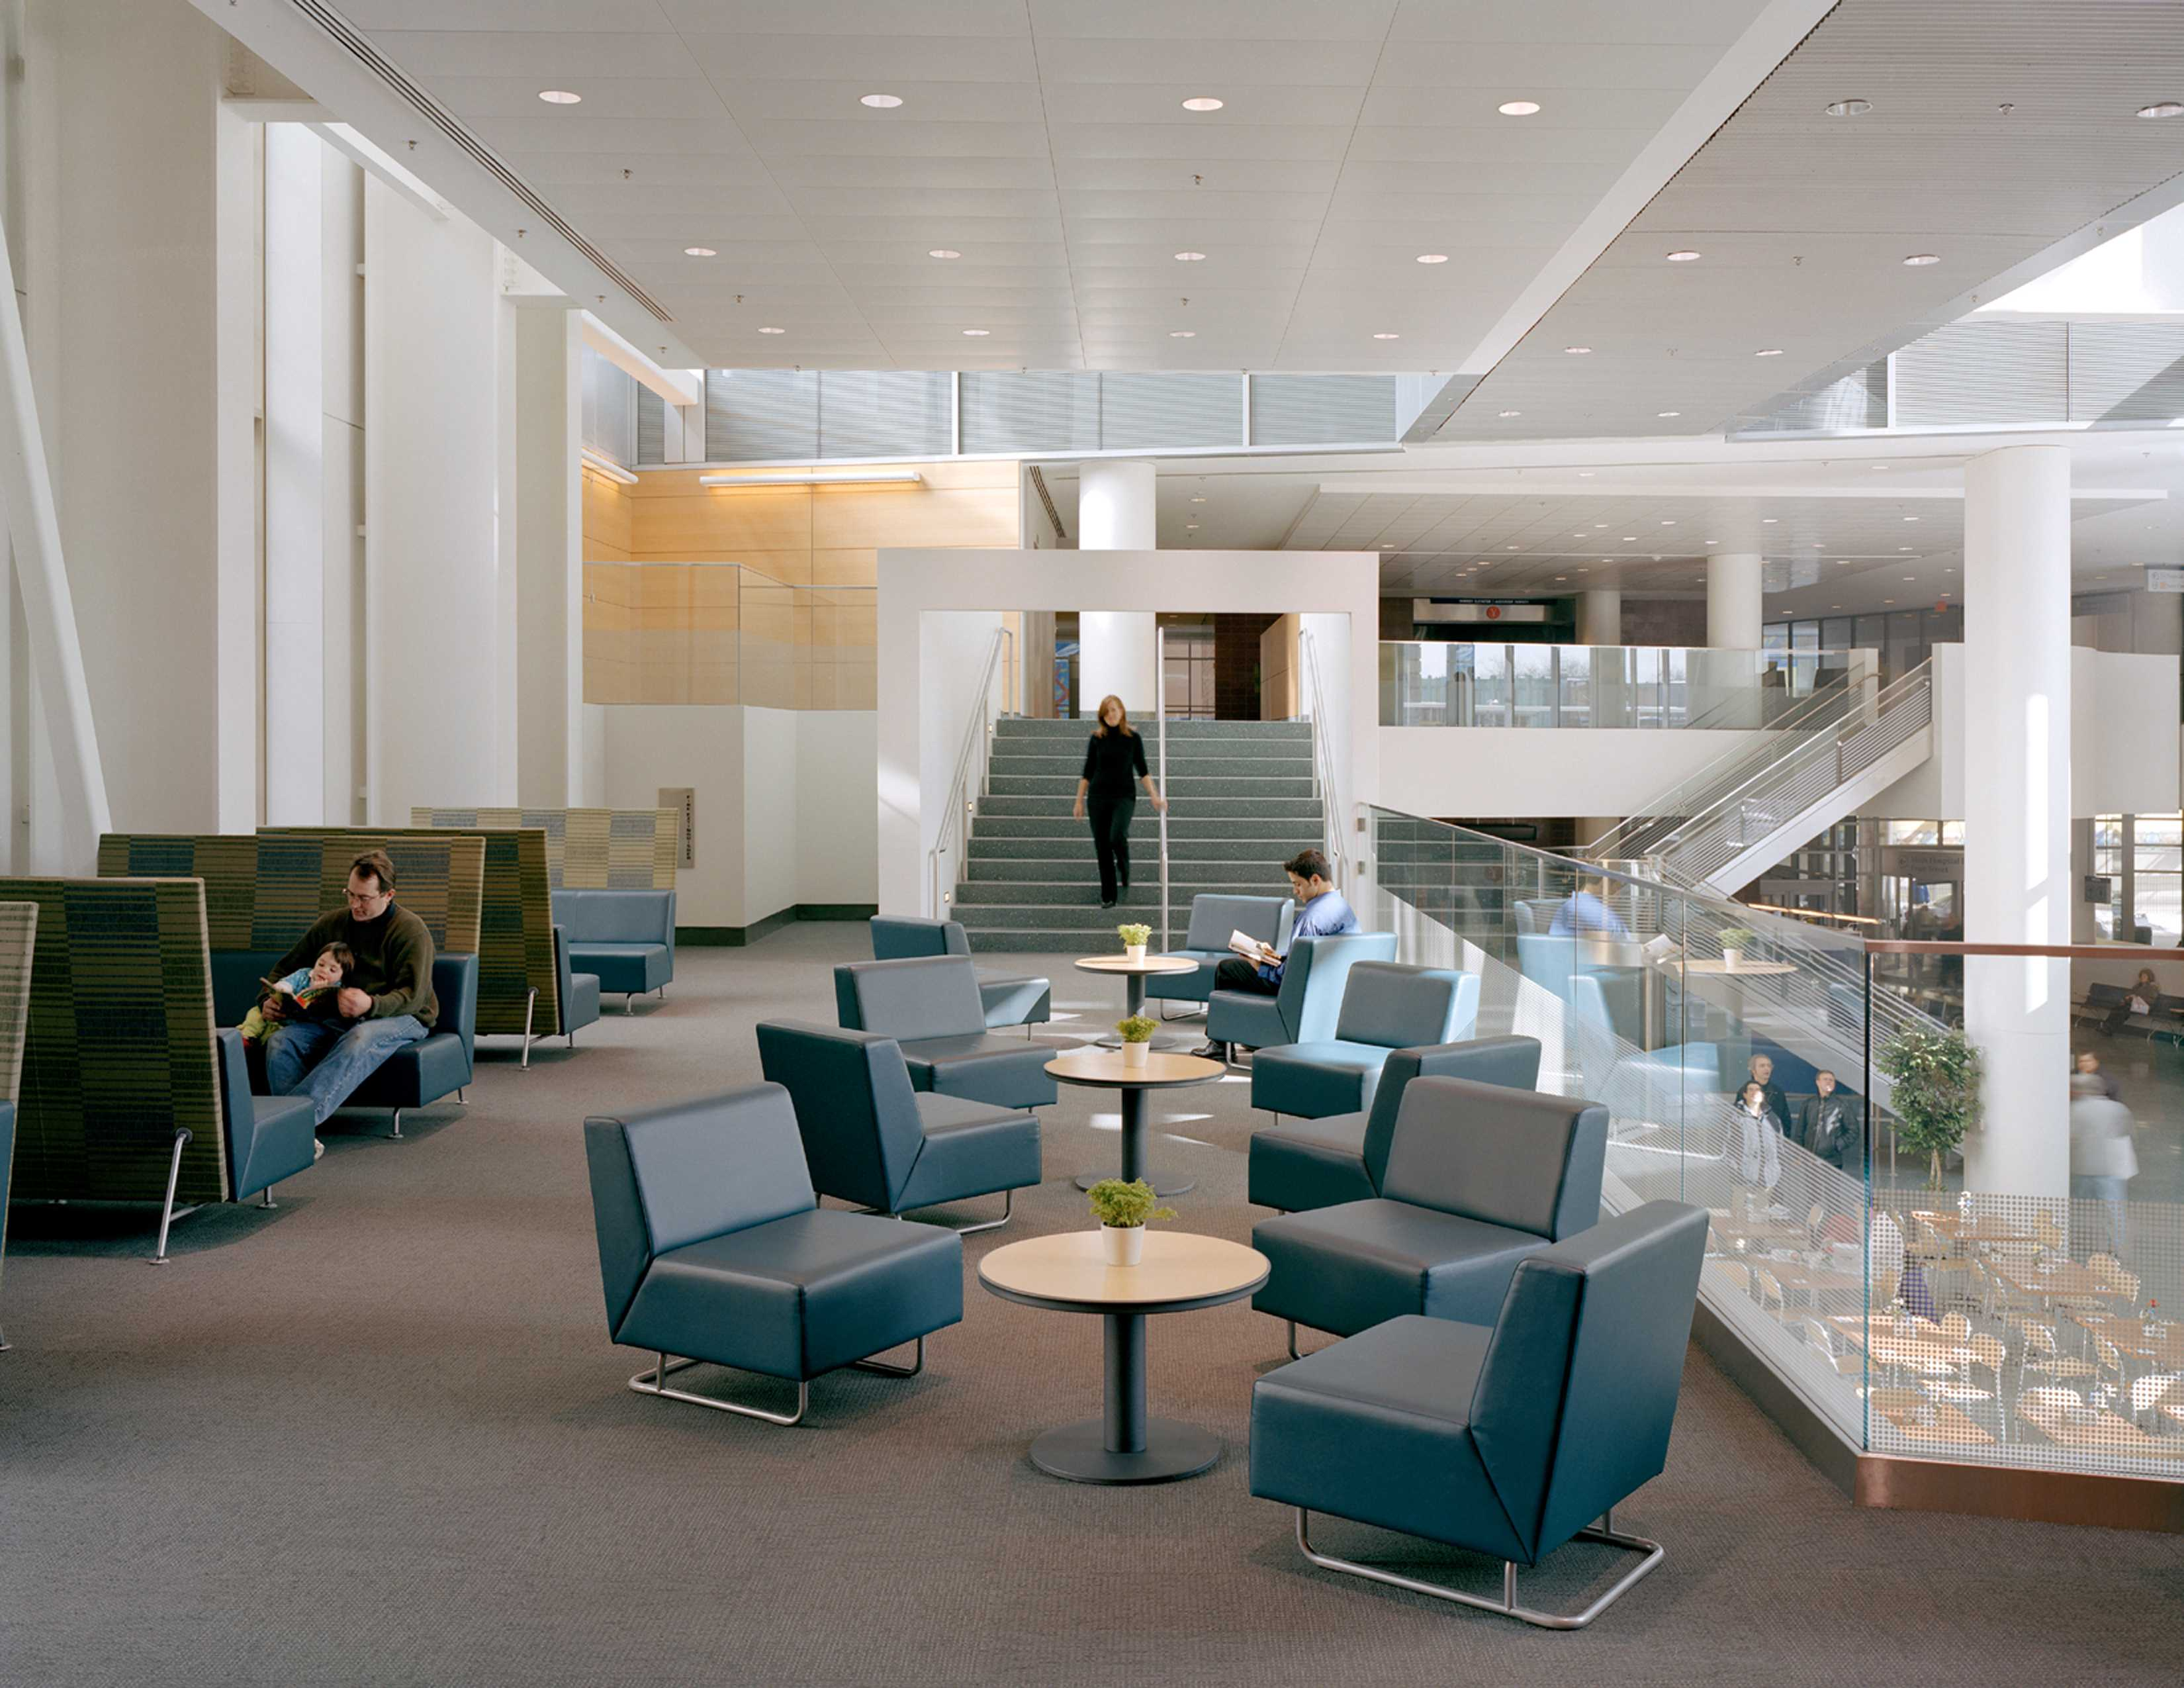 massachusetts general hospital yawkey center for outpatient